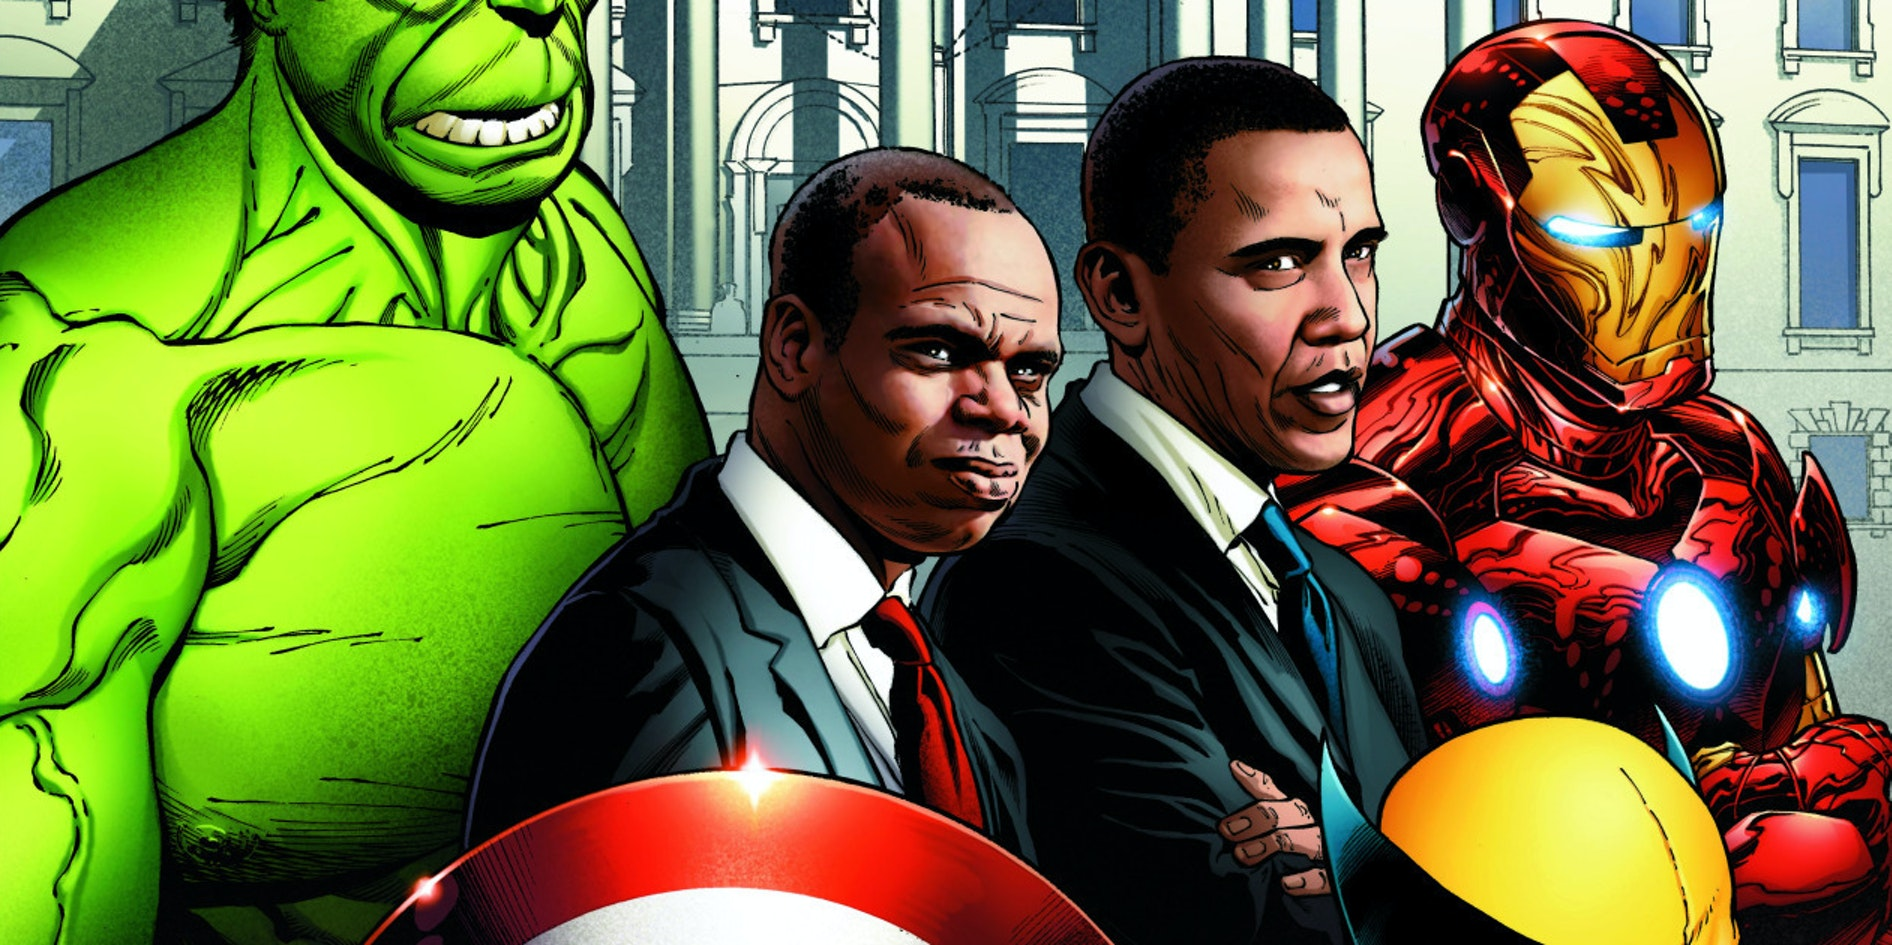 Joe Quesada's original work for President Obama, dated 2011.